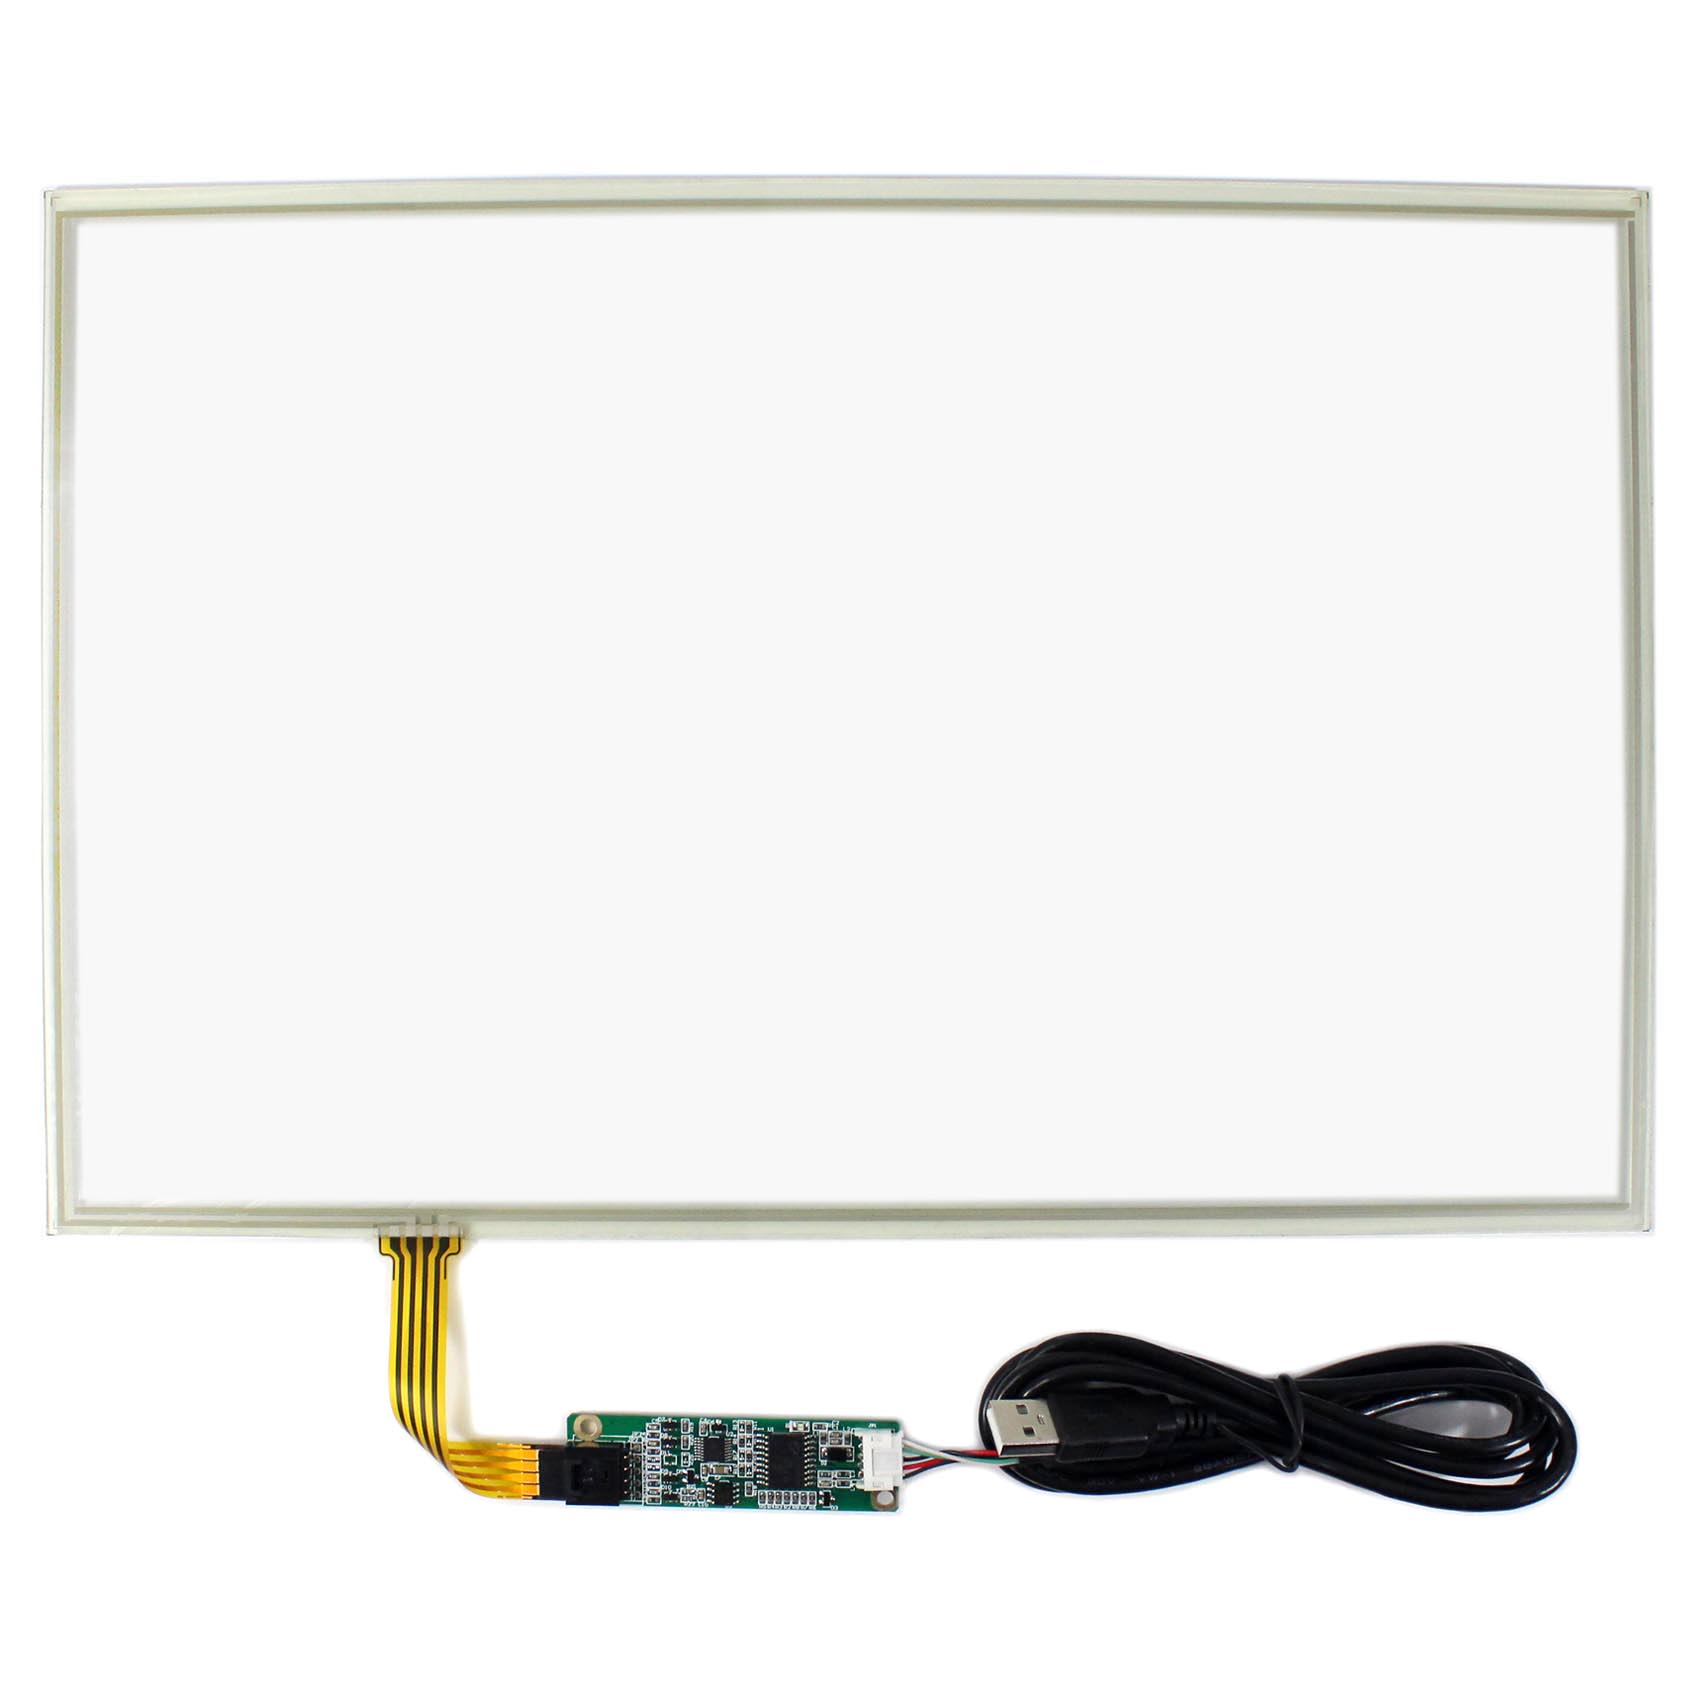 15.4 Resistive Touch Panel With Controller Card for 15.4 1280x800 LCD Screen15.4 Resistive Touch Panel With Controller Card for 15.4 1280x800 LCD Screen